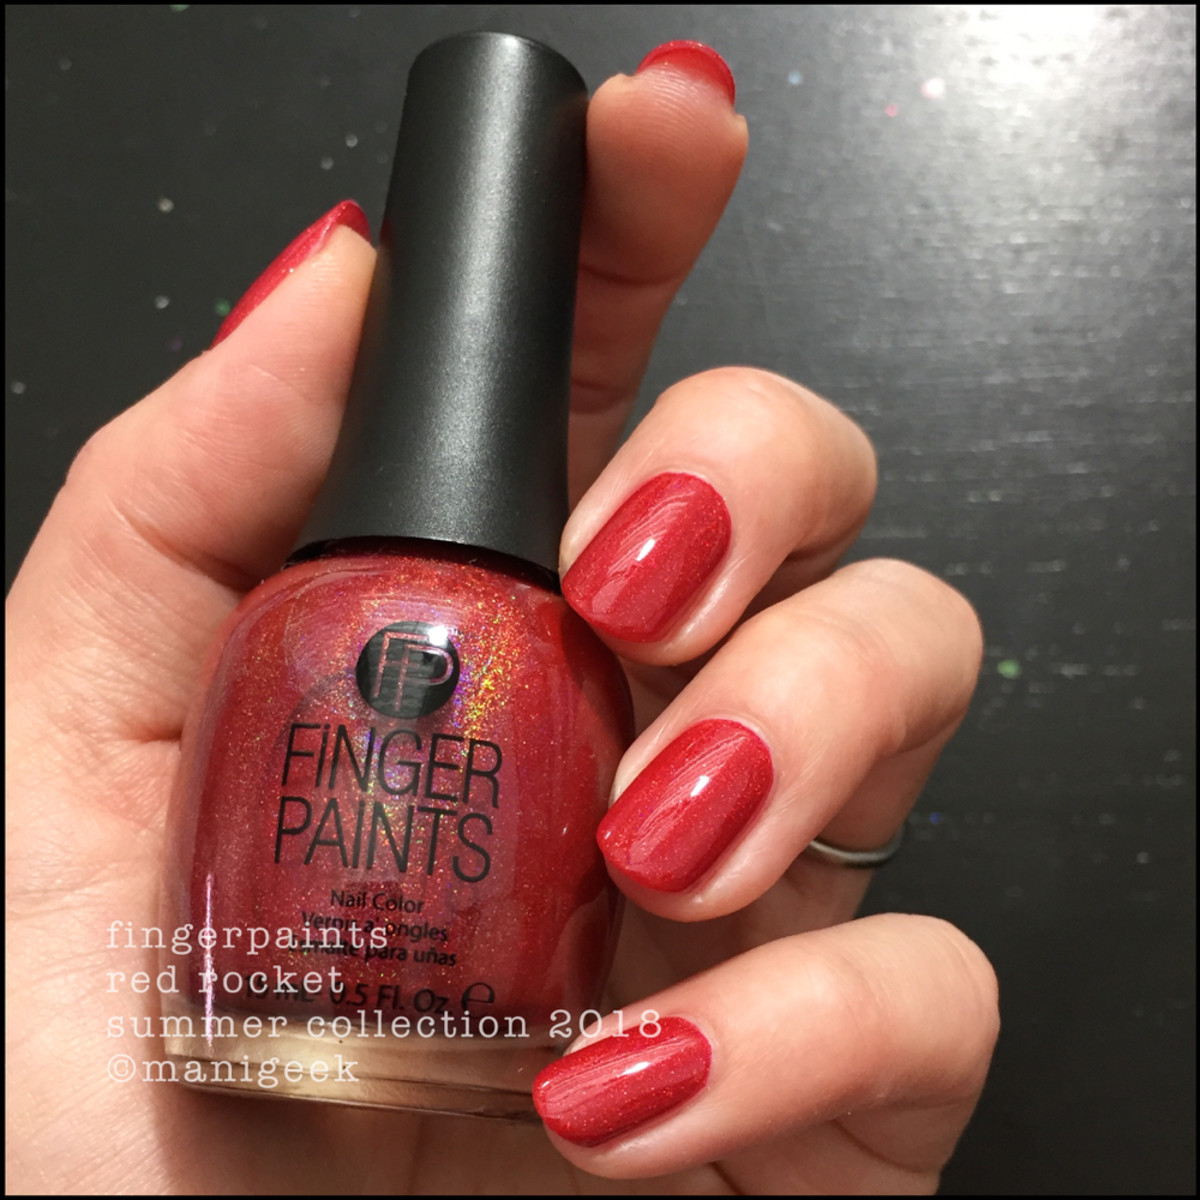 Fingerpaints Red Rocket Nail Polish Summer 2018